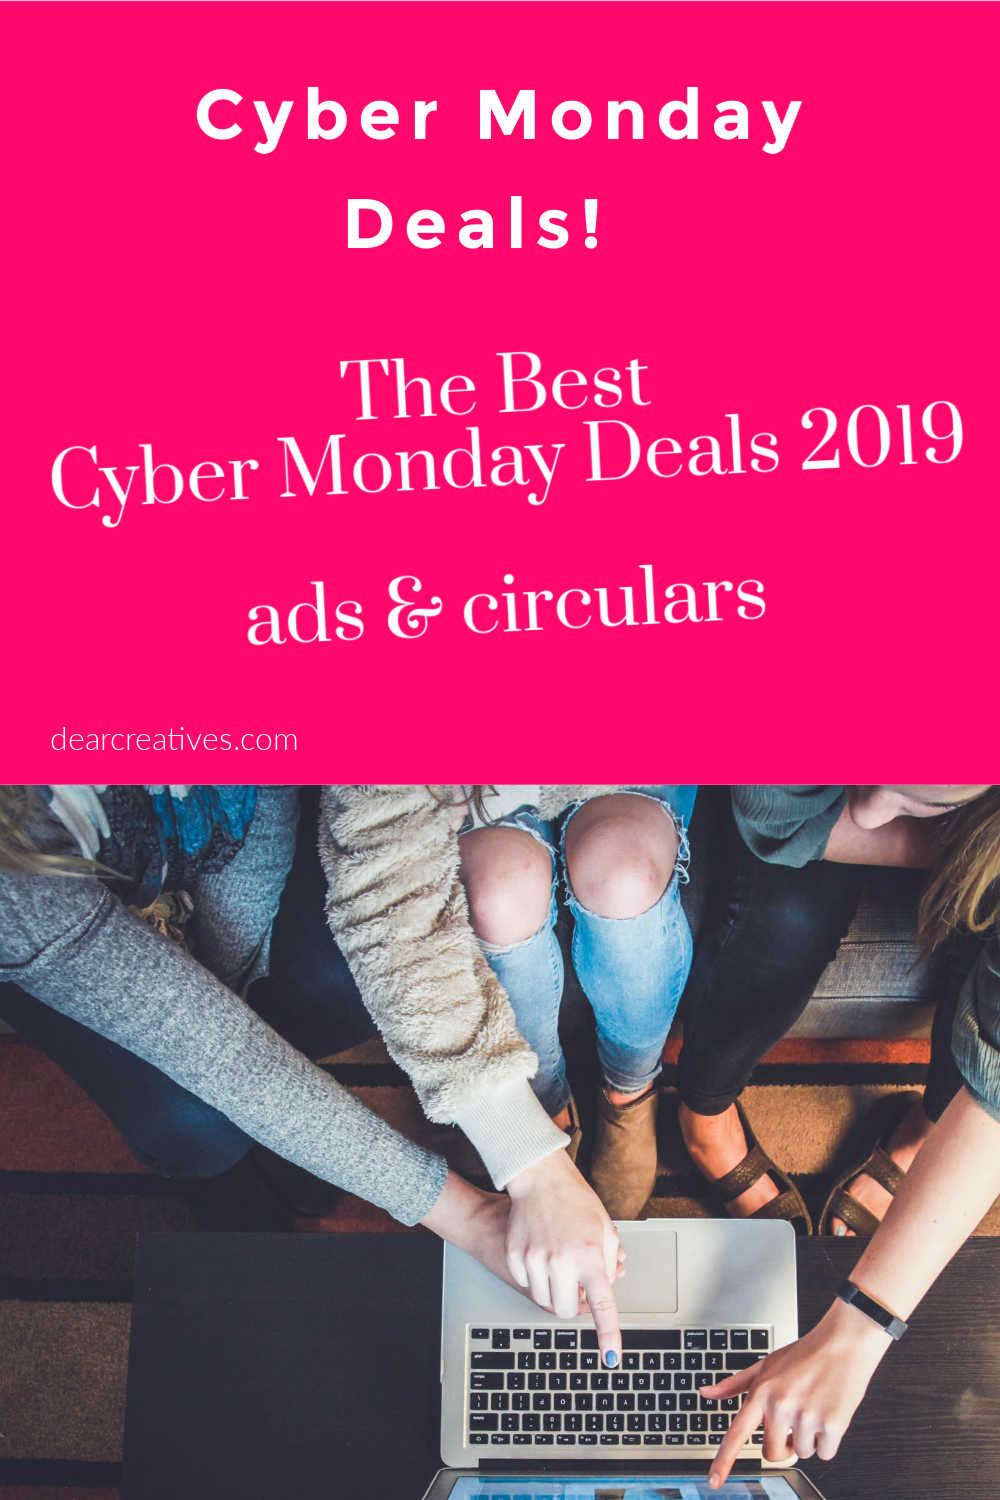 Cyber Monday Deals 2019 Shopping Guide!